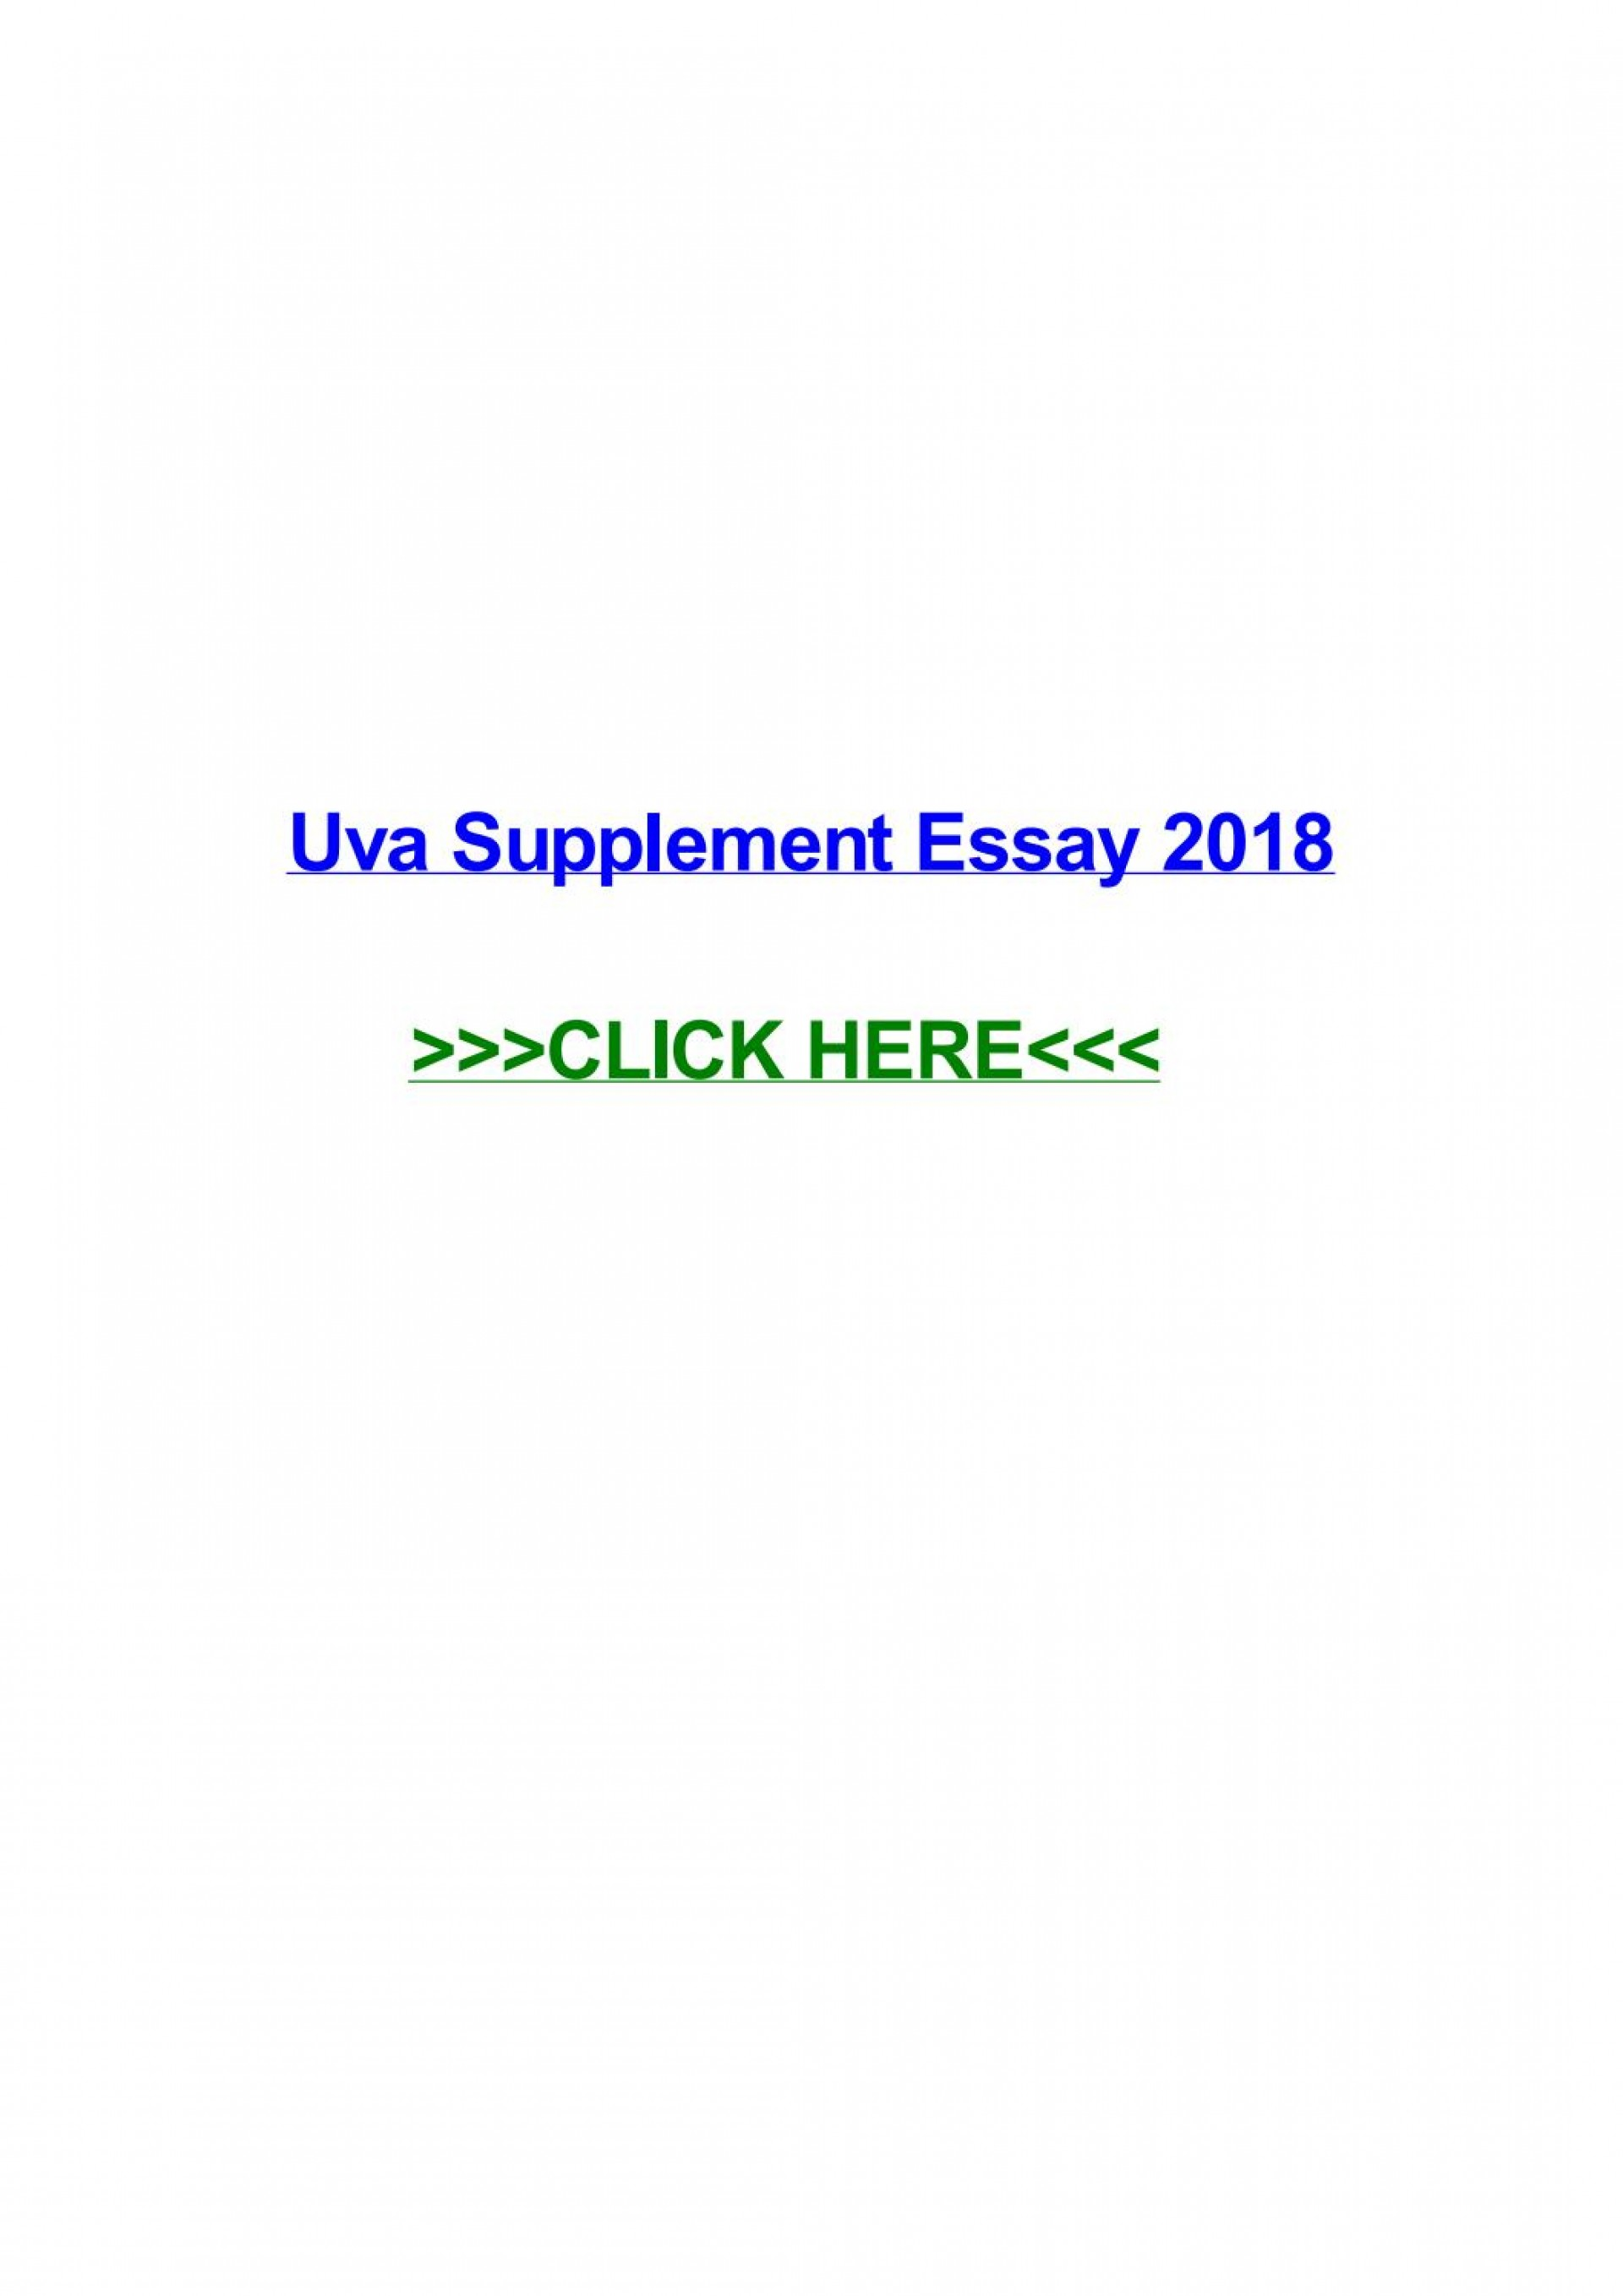 006 Page 1 Essay Example Uva Rare Supplement Tips 2017 2016 1920